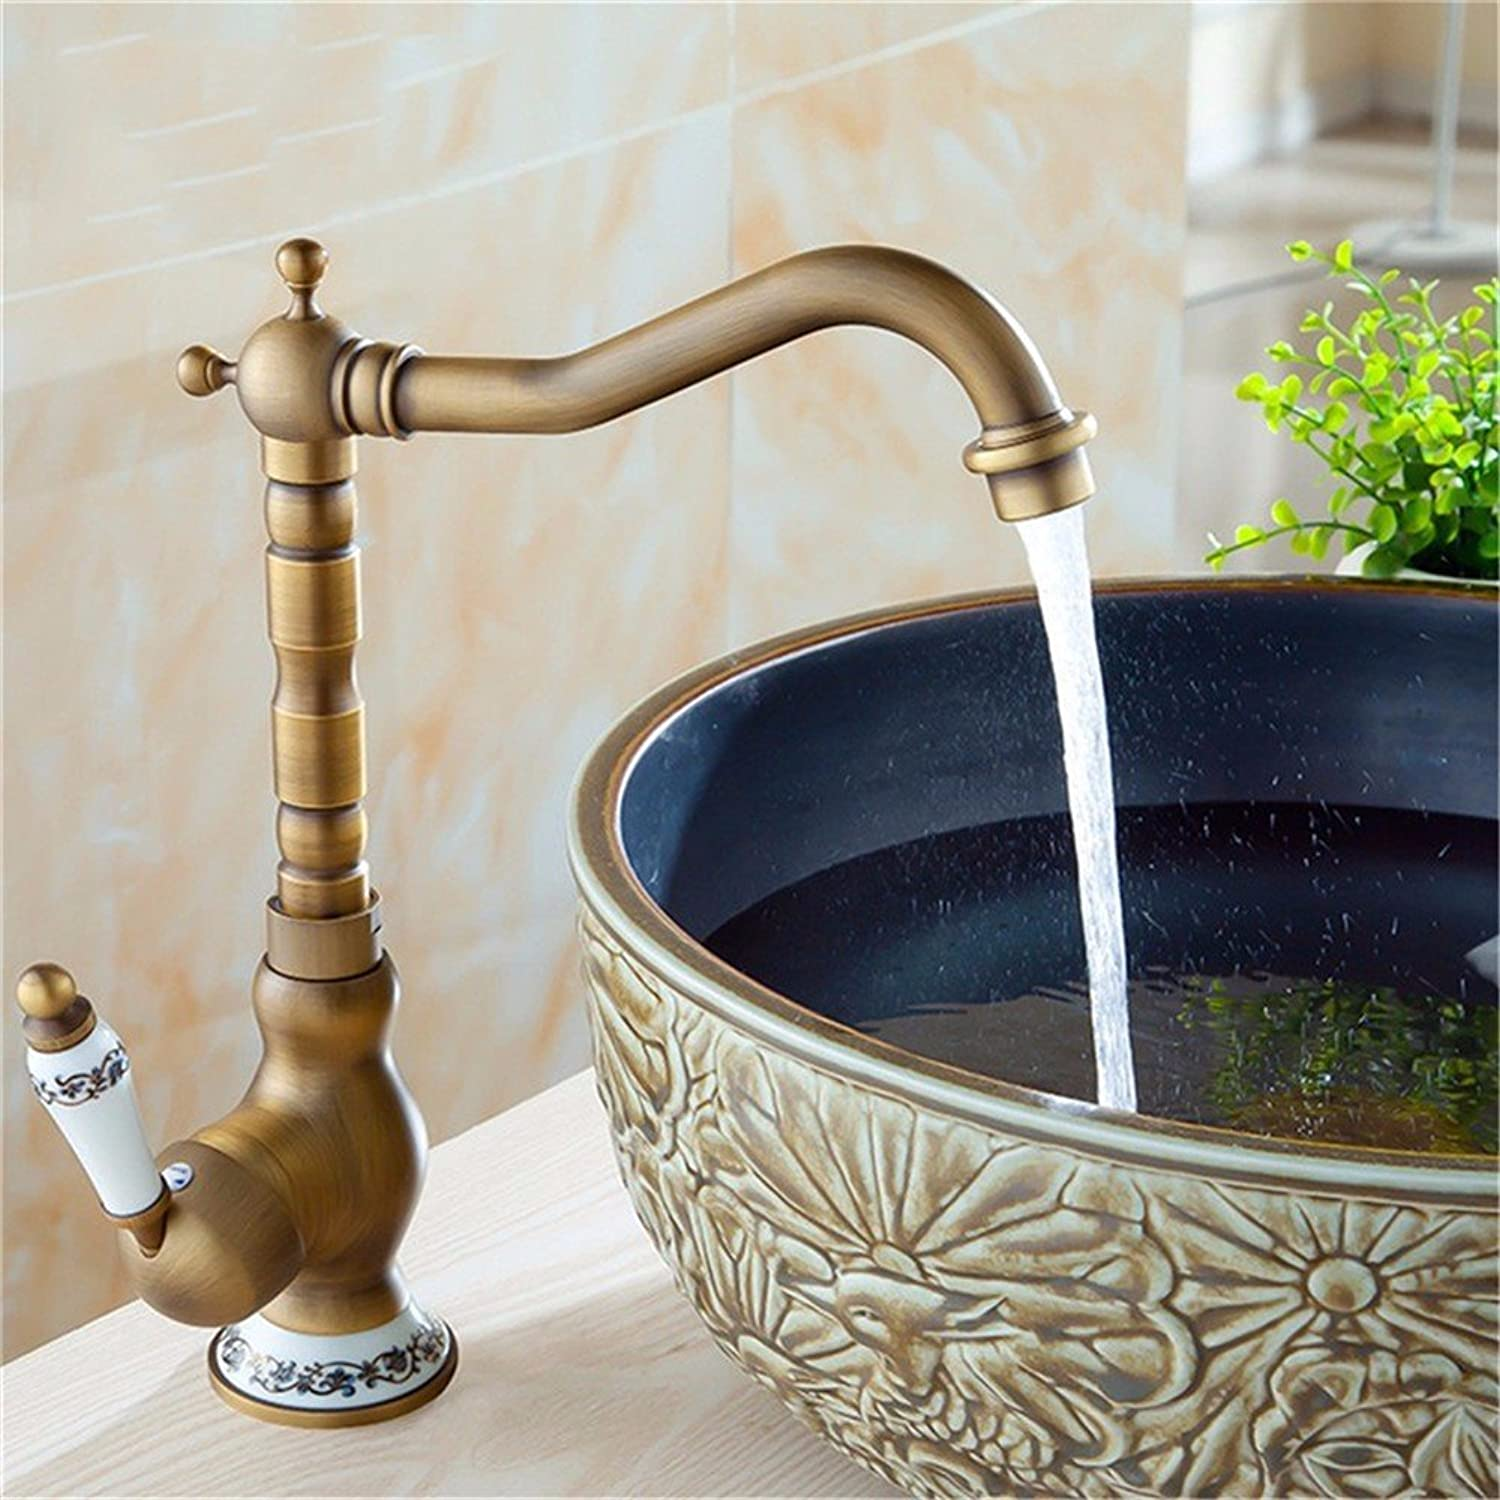 Bijjaladeva Antique Bathroom Sink Vessel Faucet Basin Mixer Tap Antique wash basin mixer full copper pots on the bluee-tiled hot and cold faucet basin sink to turn the water tap